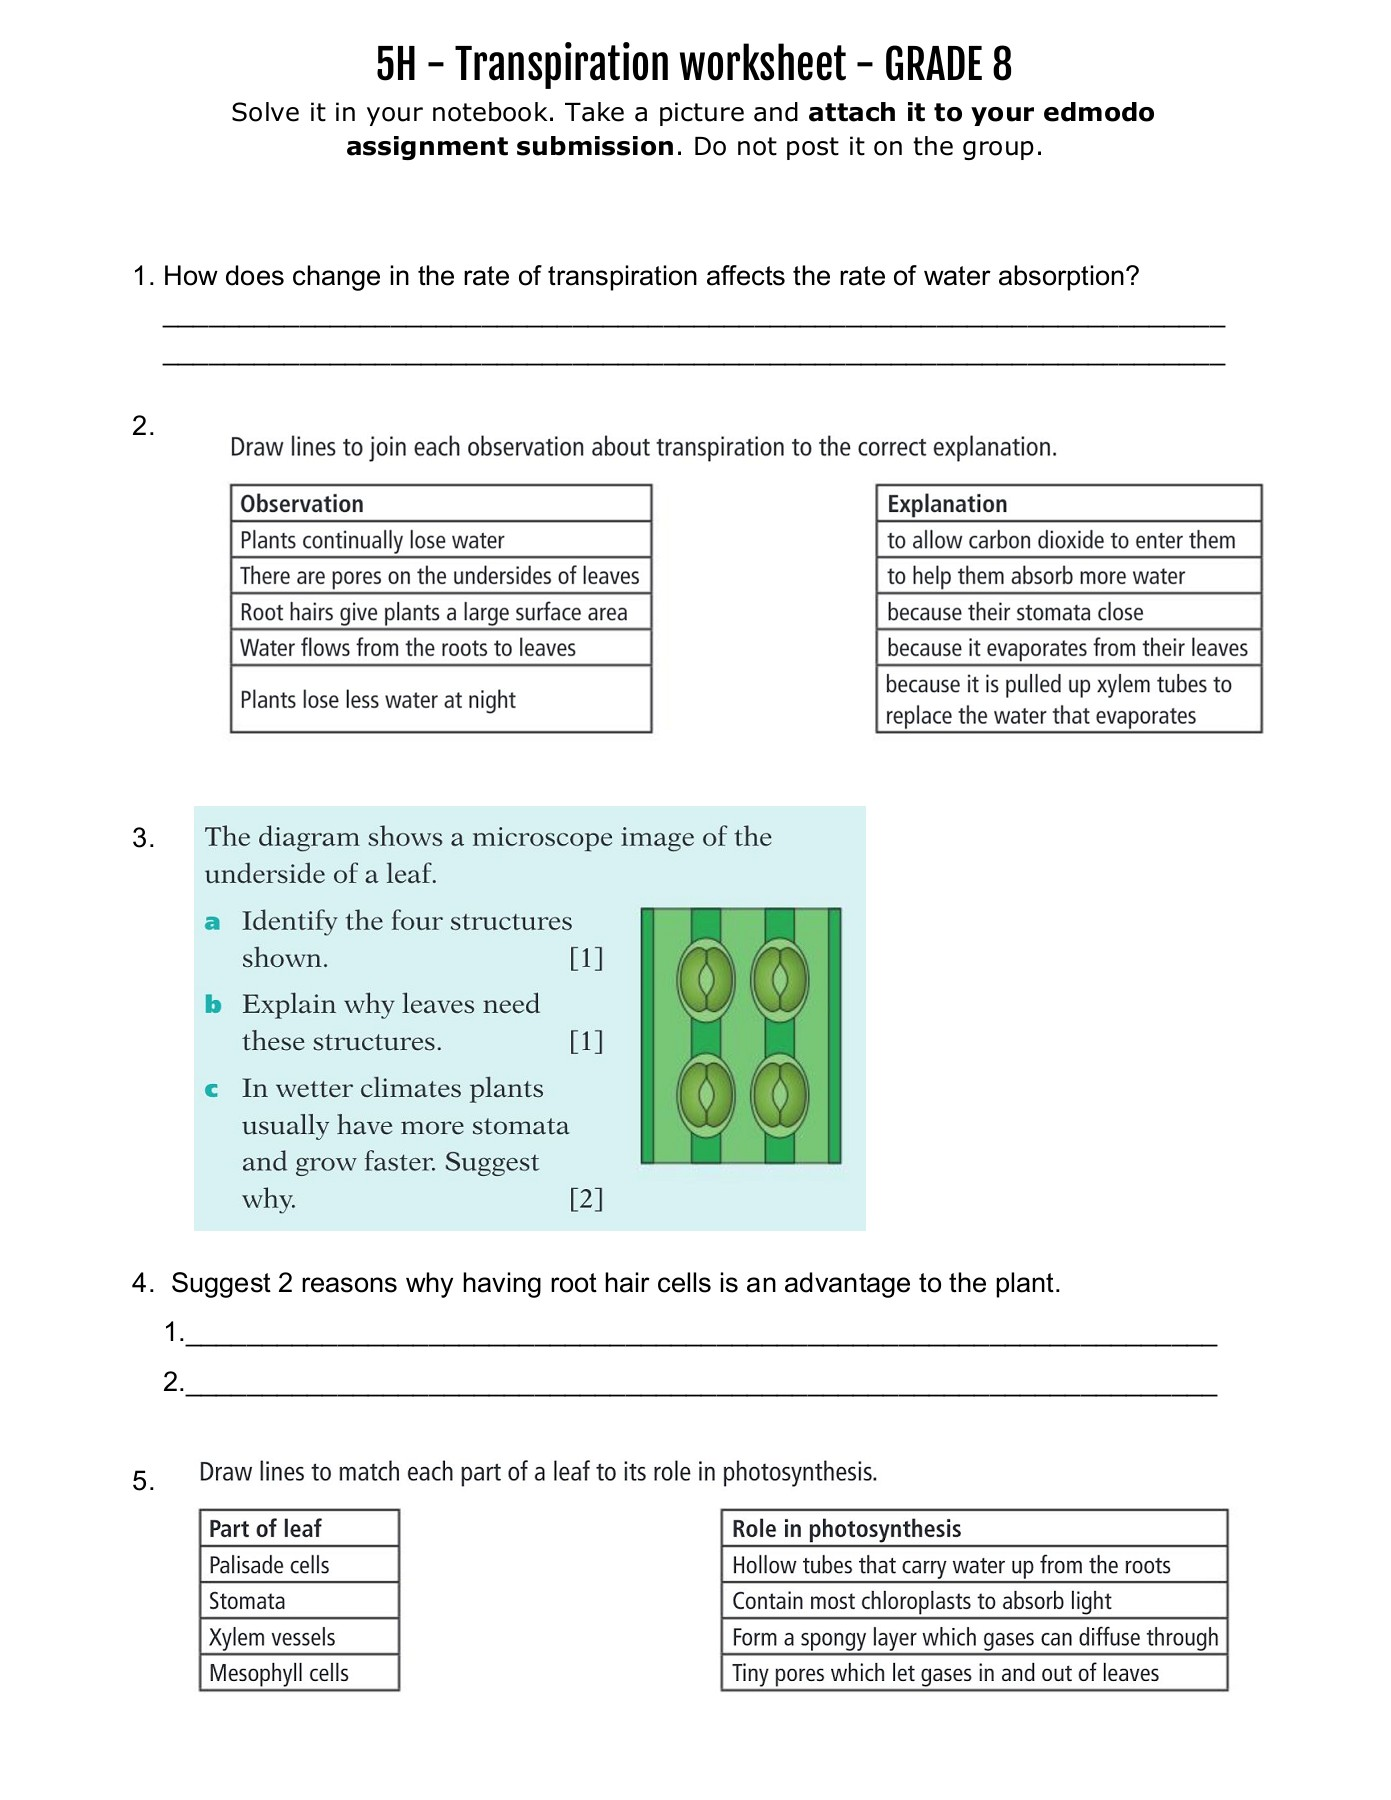 small resolution of 5H - Transpiration worksheet - GRADE 8